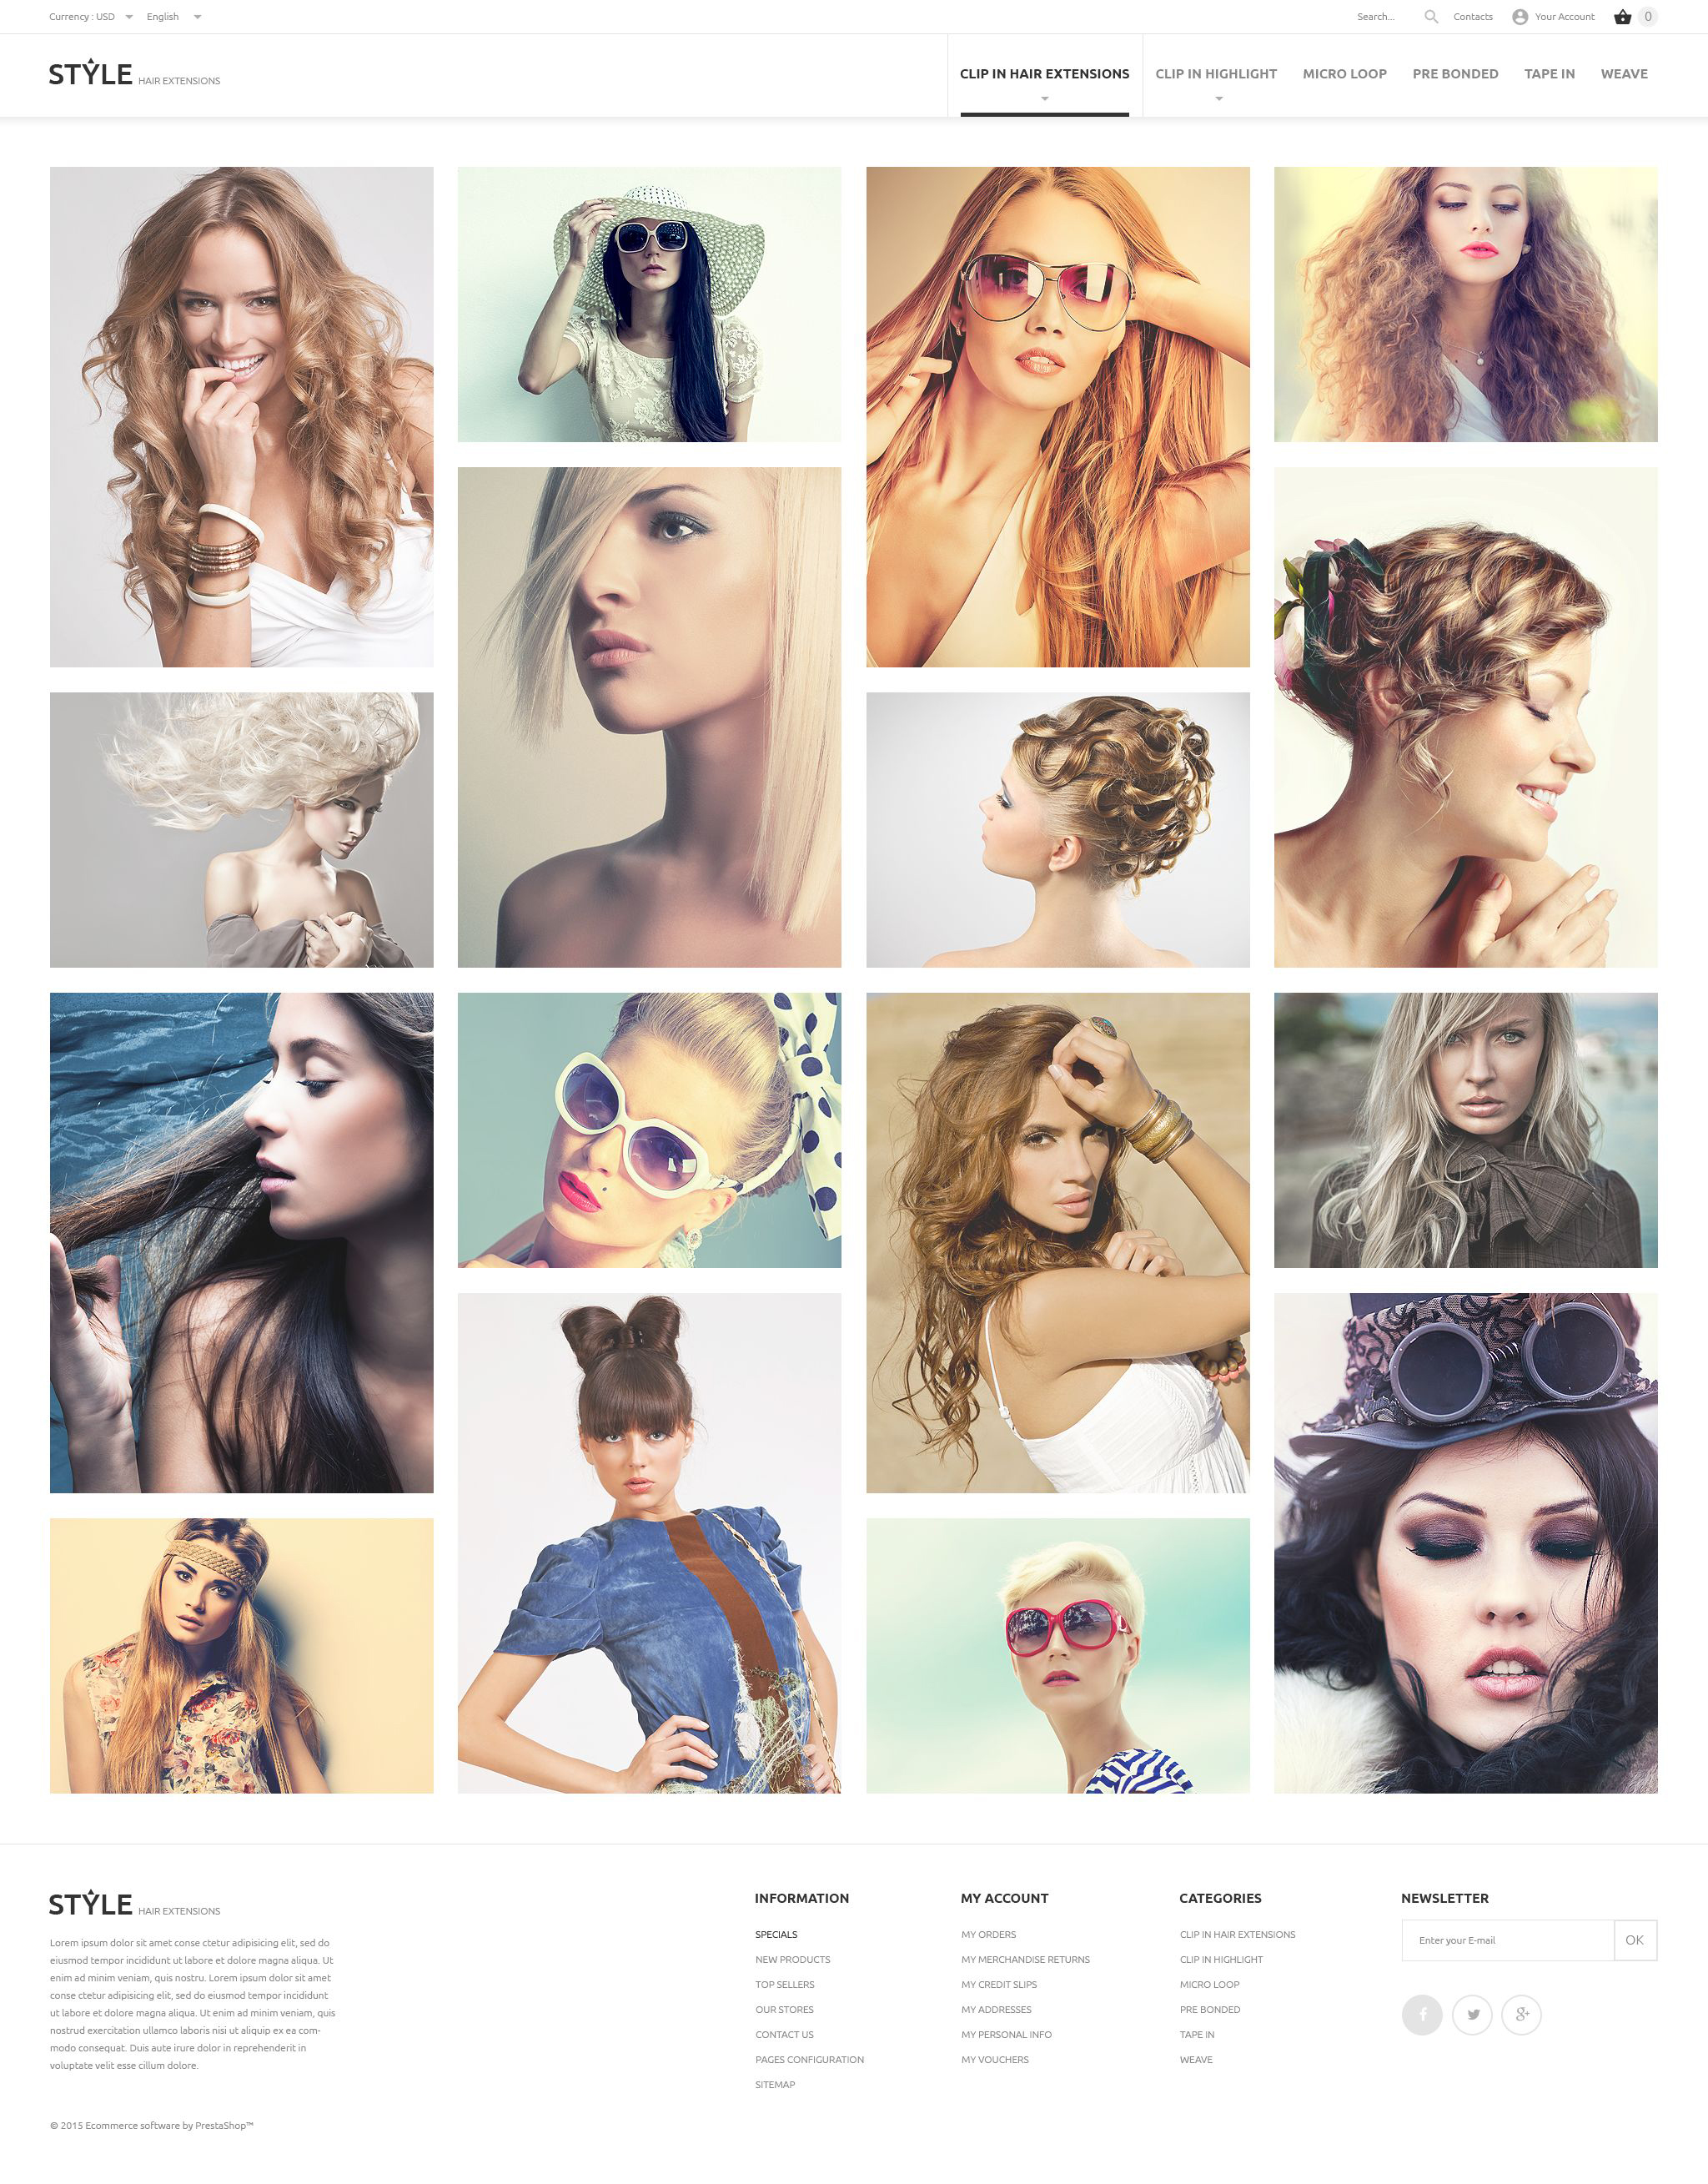 The Style Hair Care PrestaShop Design 54597, one of the best PrestaShop themes of its kind (beauty, most popular), also known as style hair care PrestaShop template, extensions PrestaShop template, clip PrestaShop template, weave PrestaShop template, bonded PrestaShop template, shopping cart PrestaShop template, magento PrestaShop template, products PrestaShop template, categories store PrestaShop template, shop PrestaShop template, accessories and related with style hair care, extensions, clip, weave, bonded, shopping cart, magento, products, categories store, shop, accessories, etc.